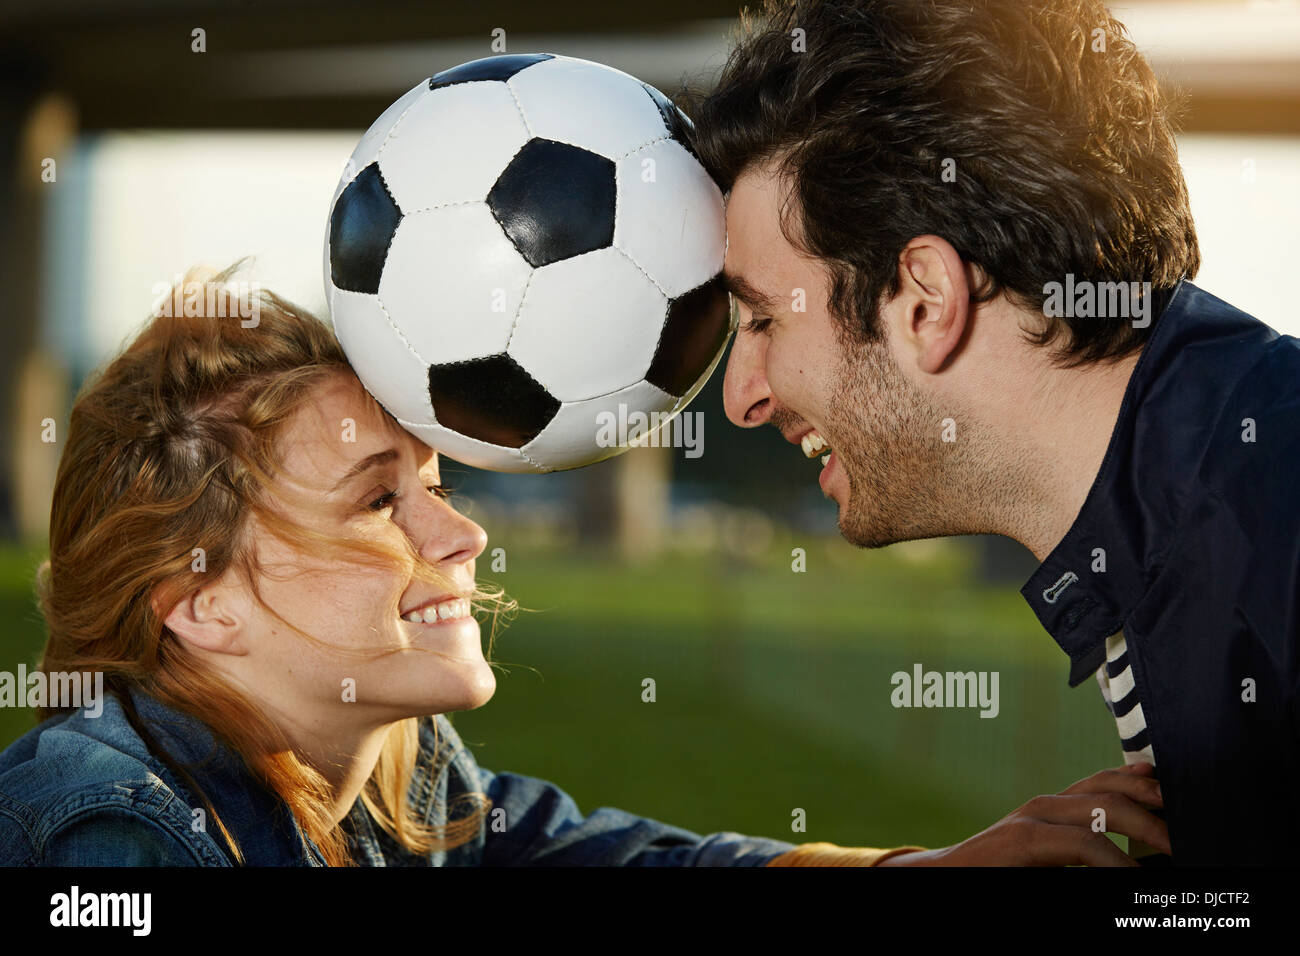 Germany, Dusseldorf, Young couple playing football - Stock Image